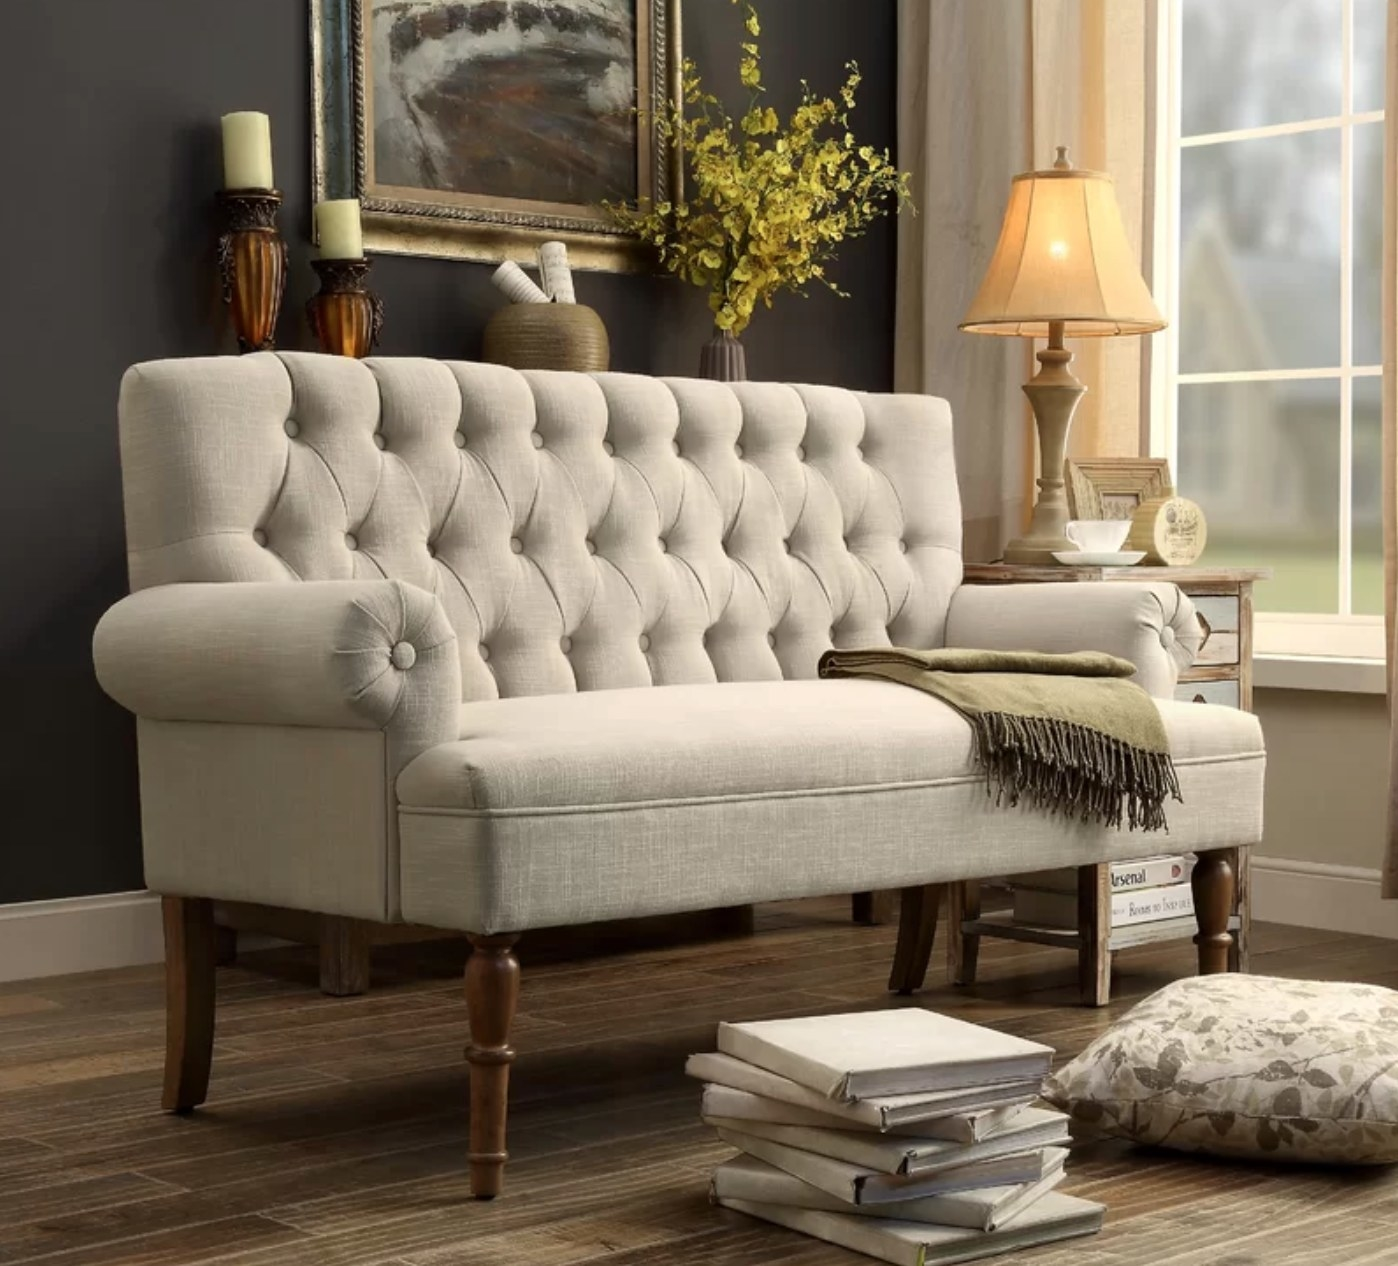 the rolled arm sette in beige linen